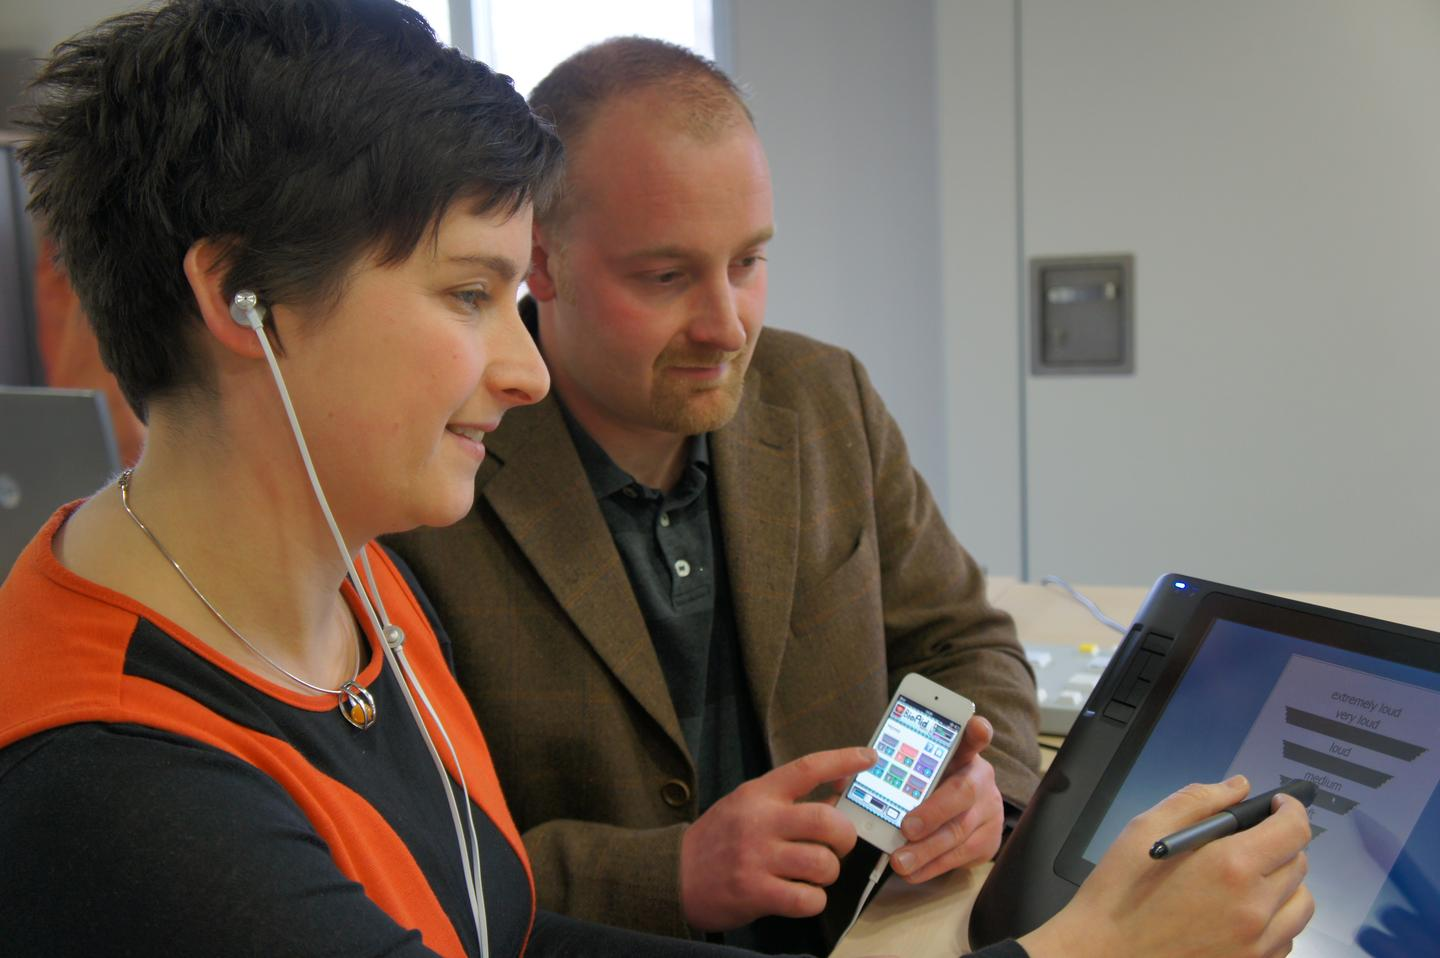 BioAid is a free app that allows the iPhone to work as a user-adjustable hearing aid